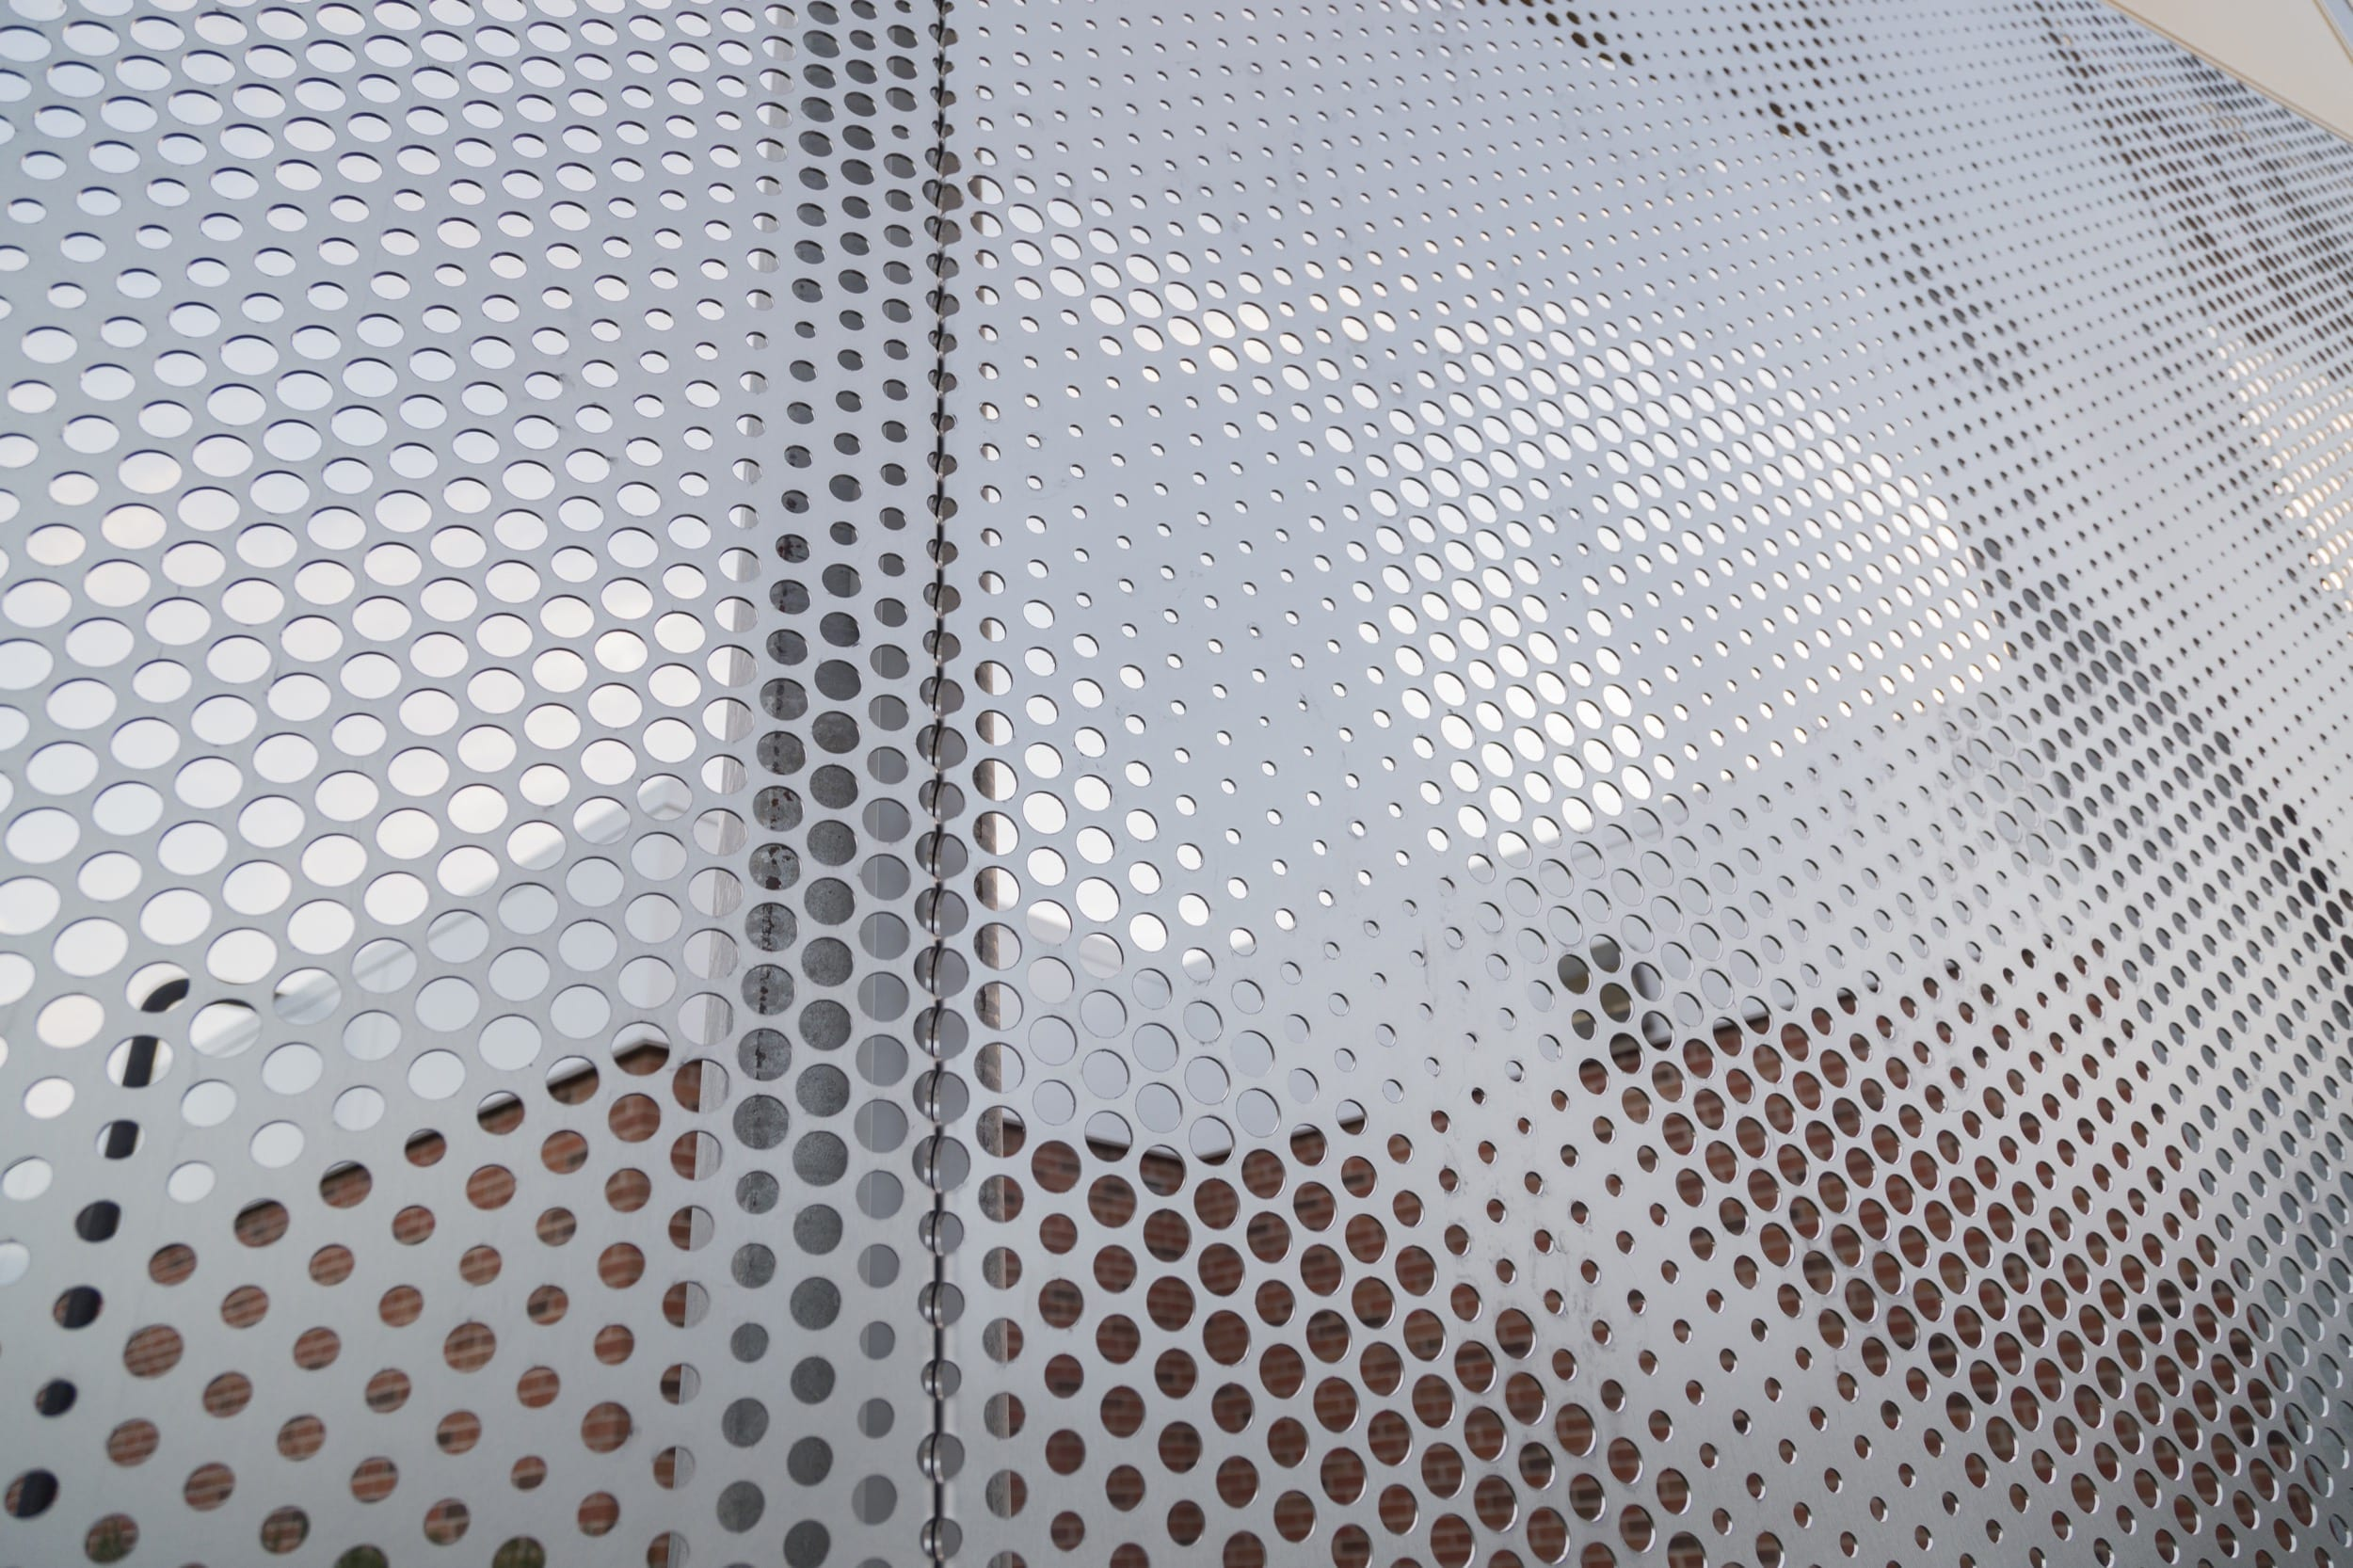 Angel hair stainless steel screens depicting the school's mascot.